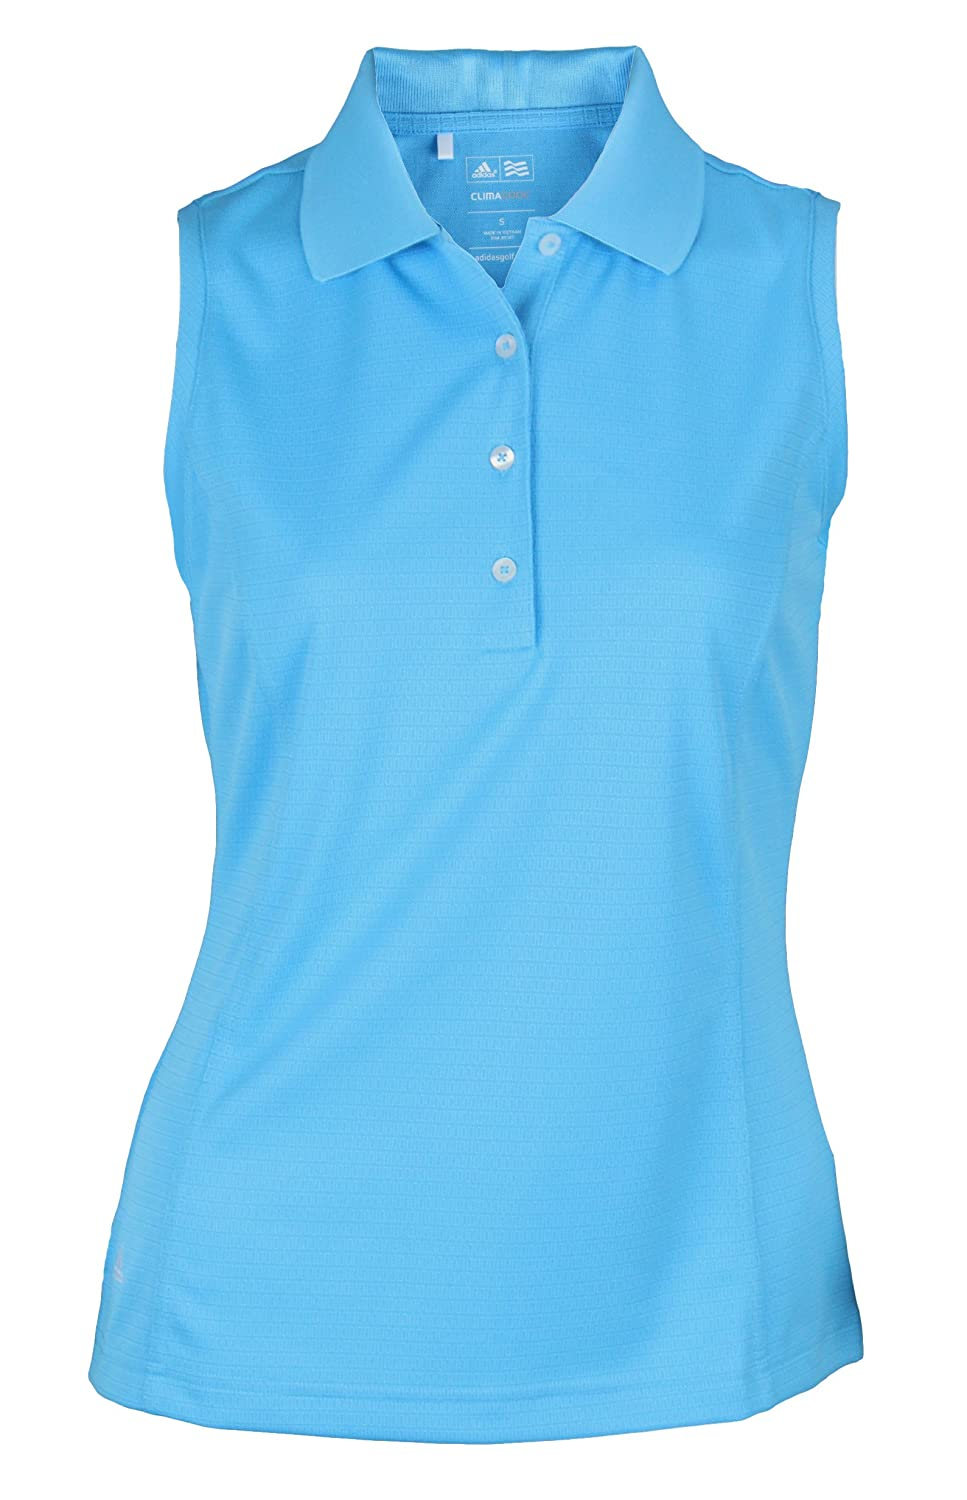 Adidas Taylormade Womens ClimaCool Sleeveless Solid Polo Shirt